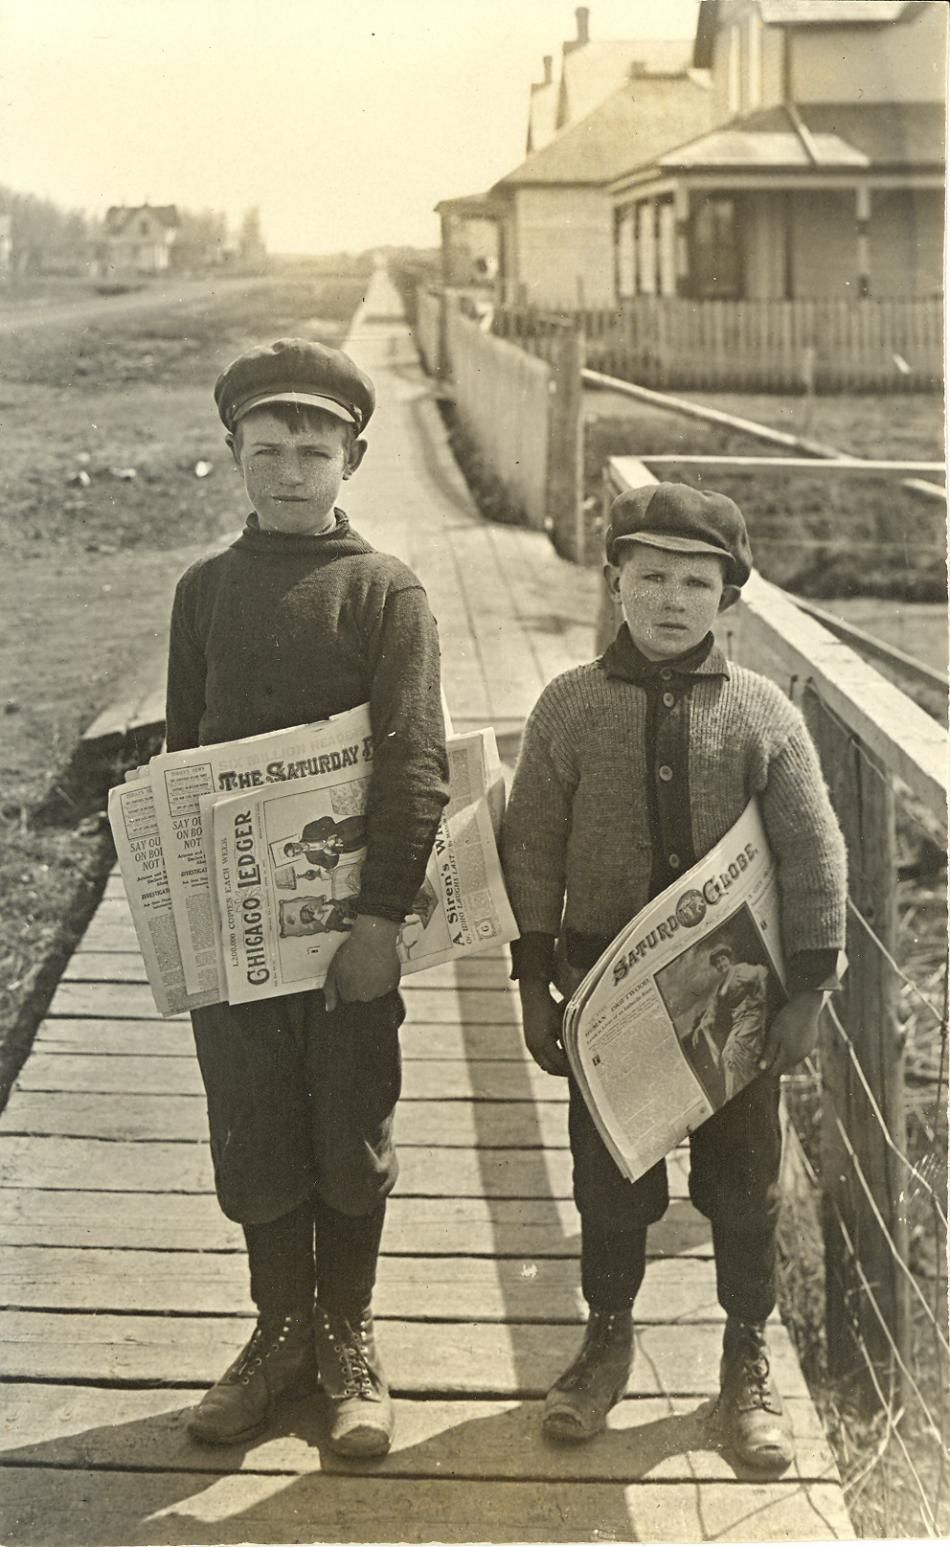 Cyril And Claude Parkinson Newspaper Delivery Boys At Kamsack Ca 1916